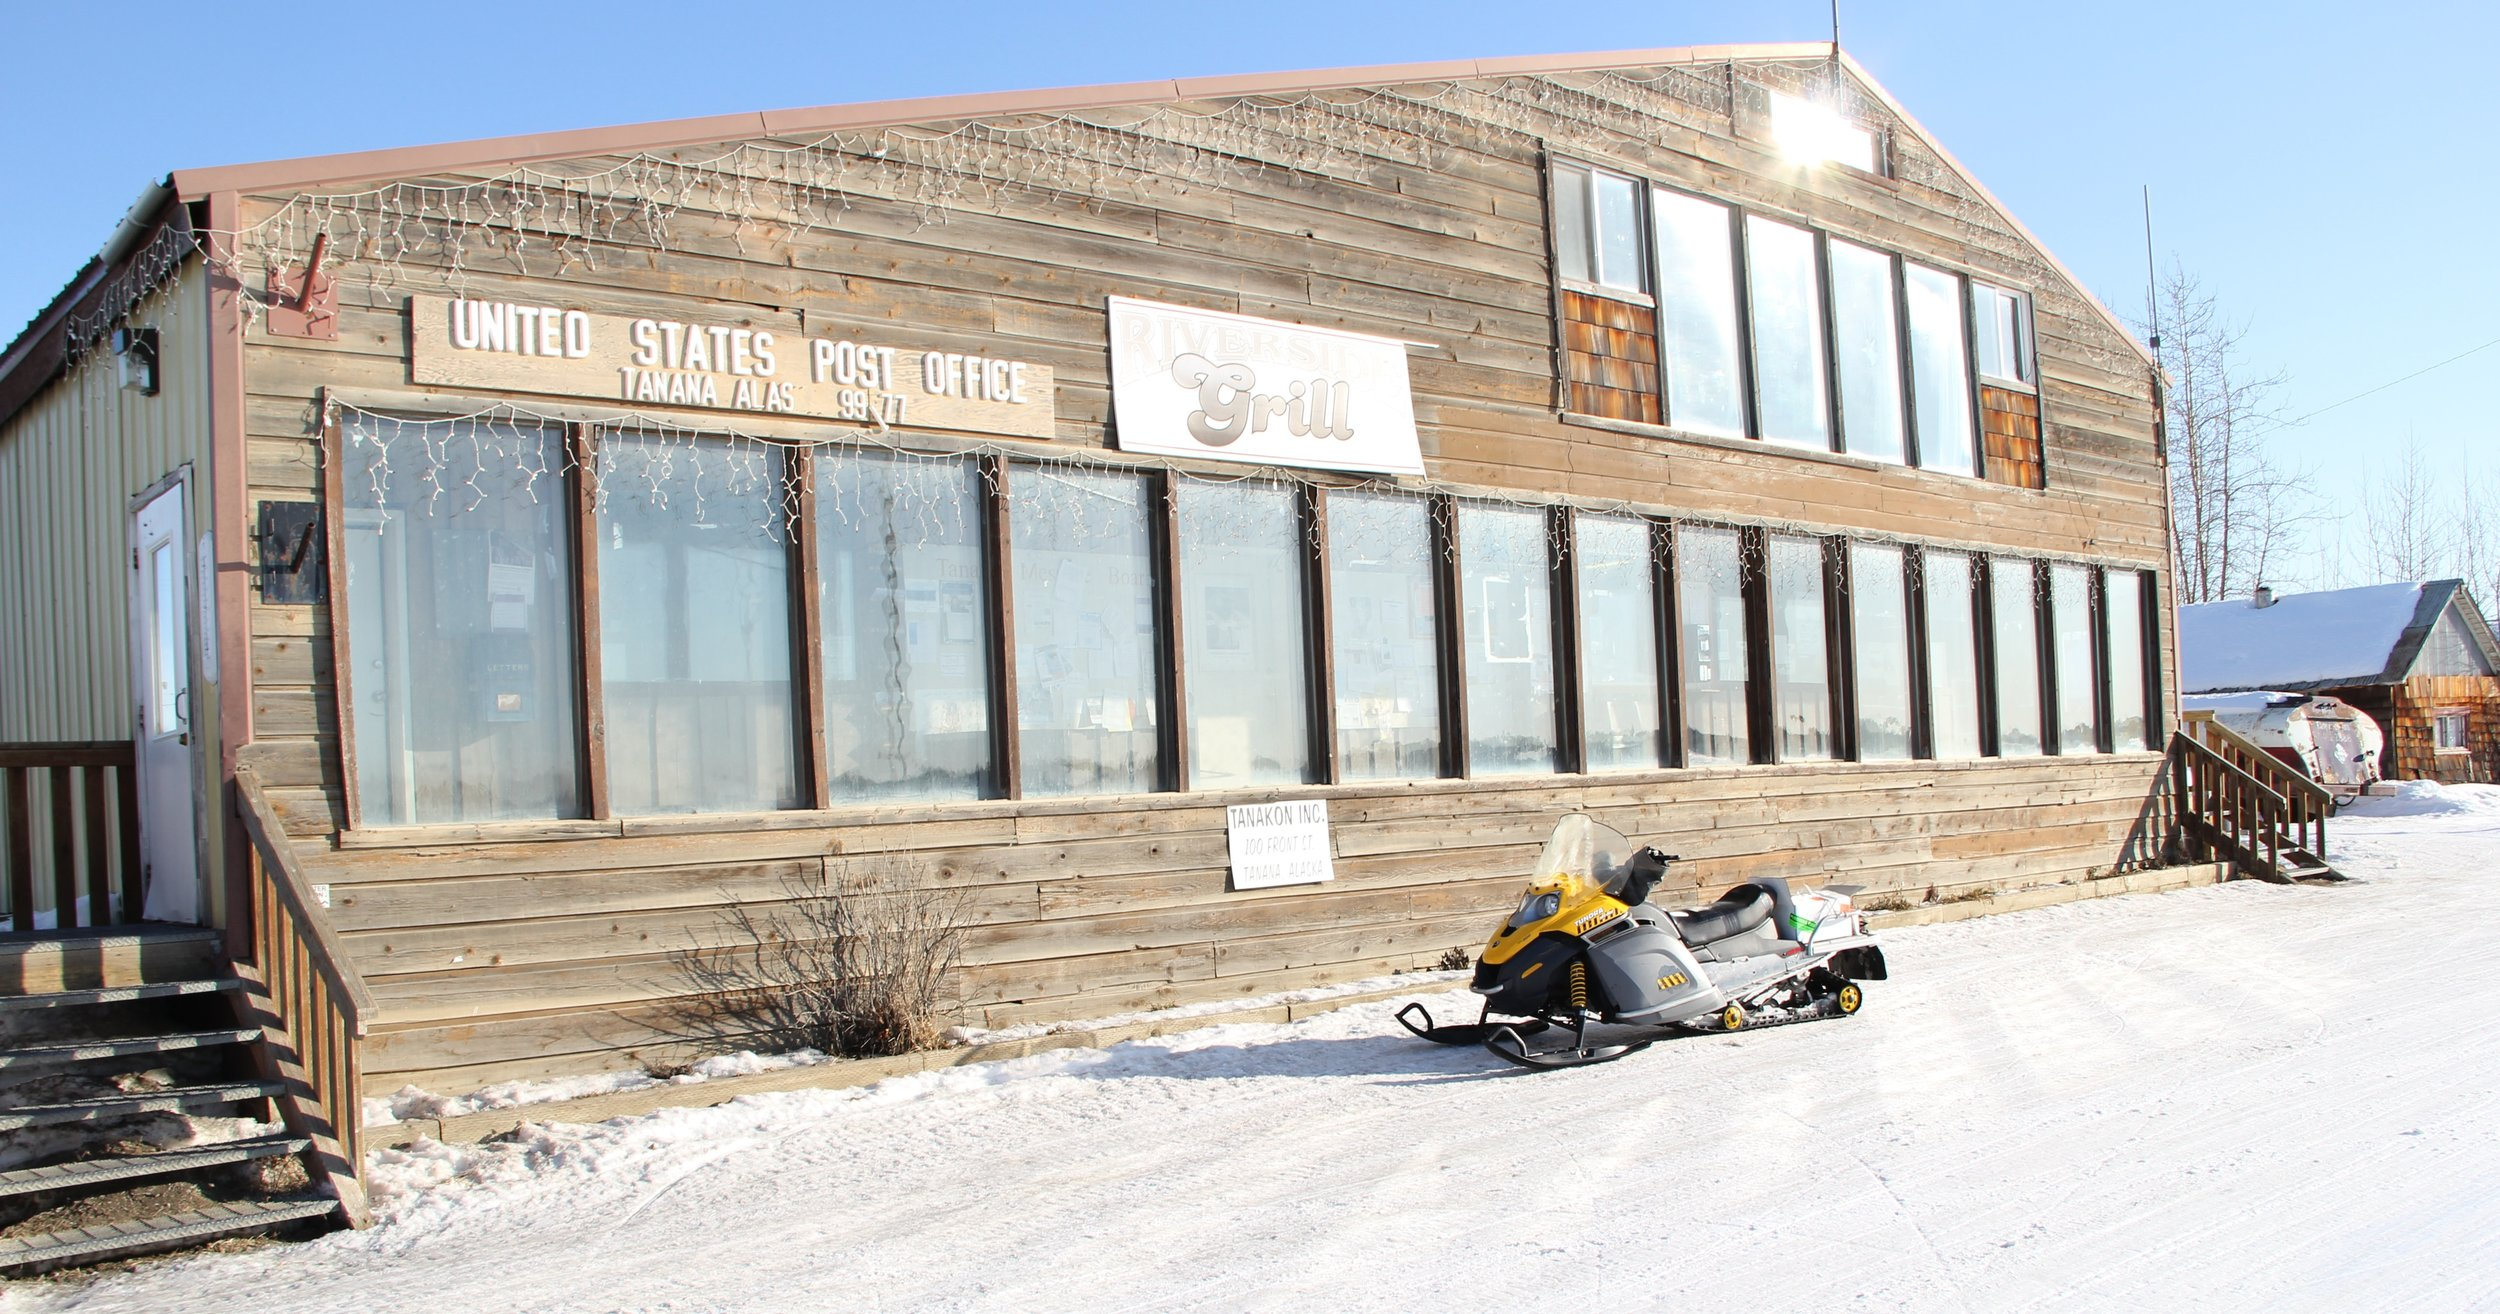 The multi-purpose building where we stayed in Tanana